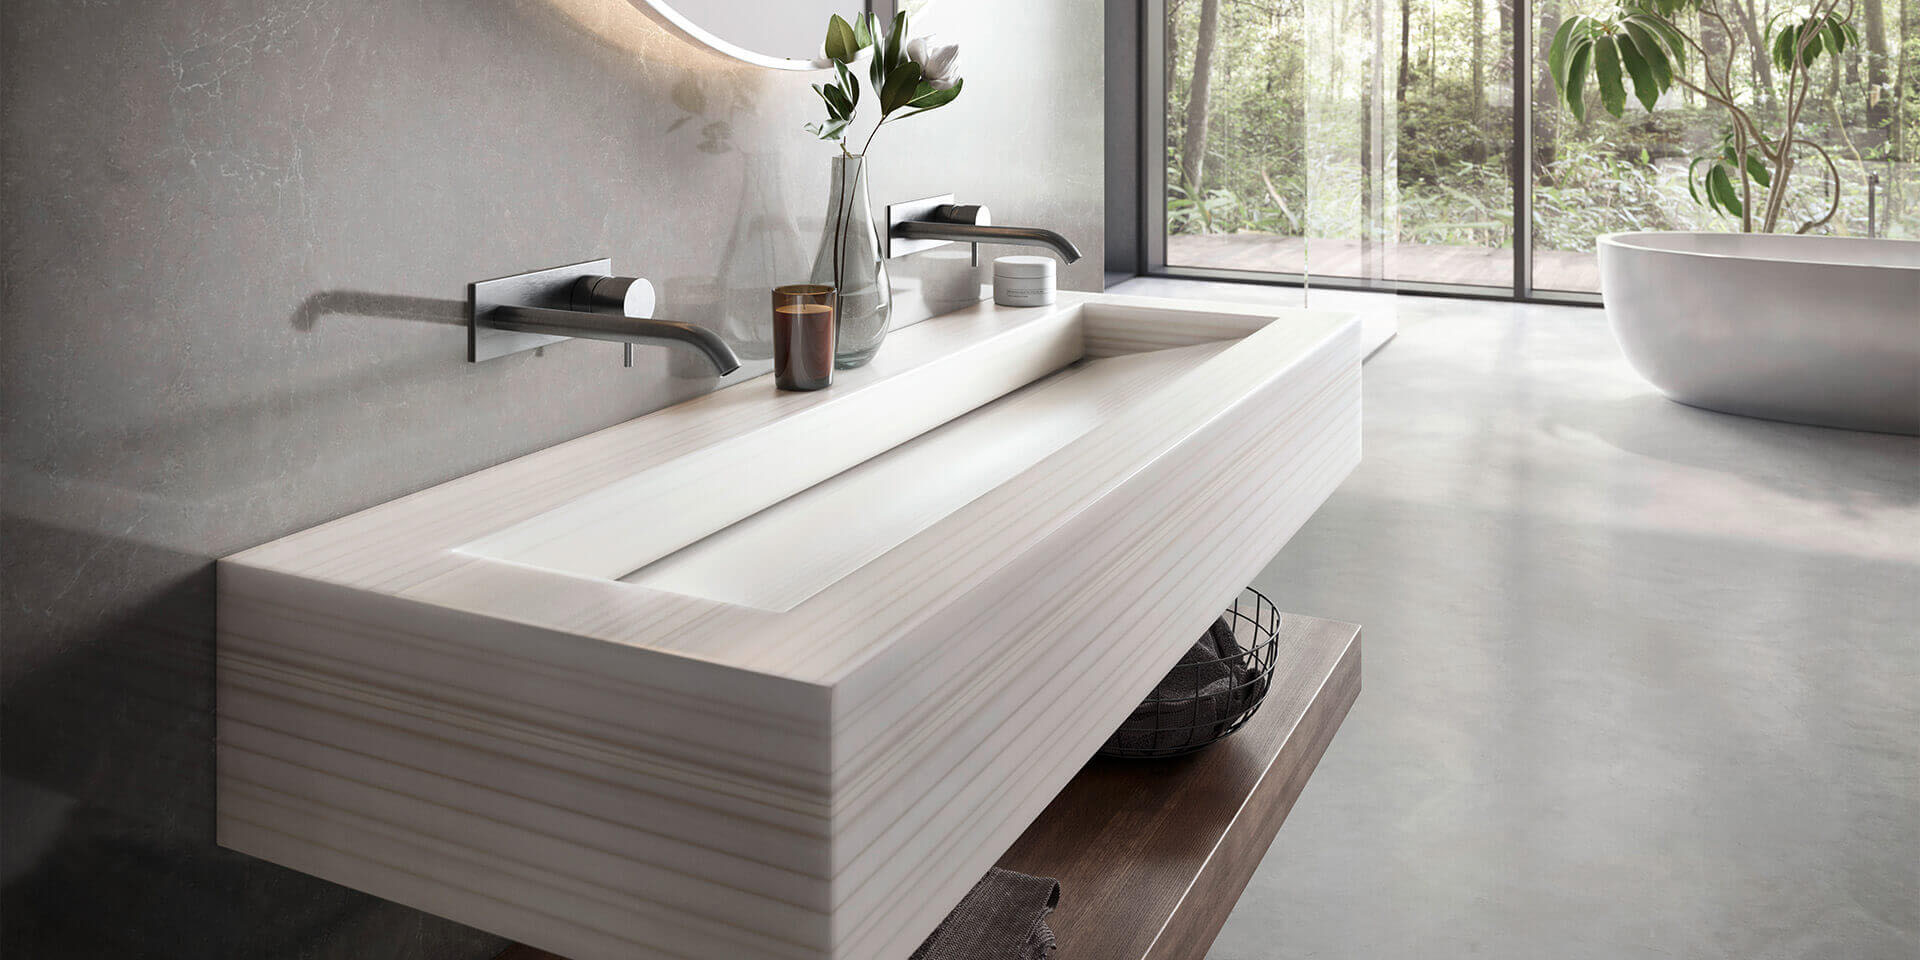 solid surface vanity counter